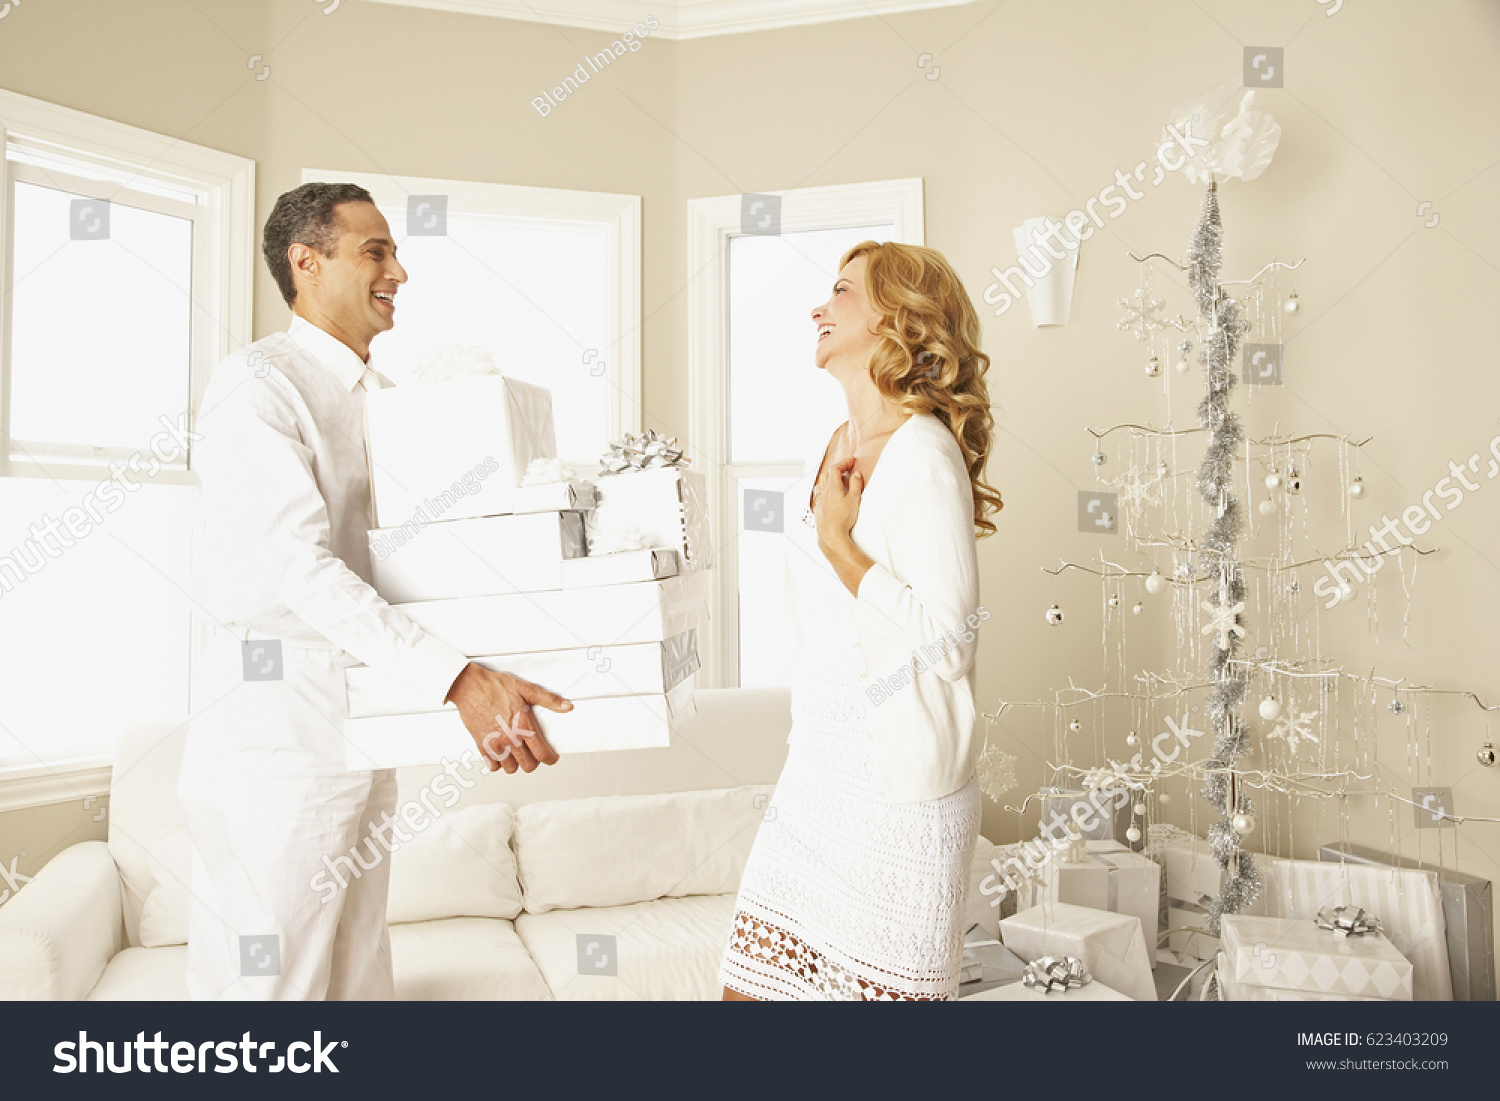 Hispanic Man Giving Wife Christmas Gifts Stock Photo (Edit Now ...